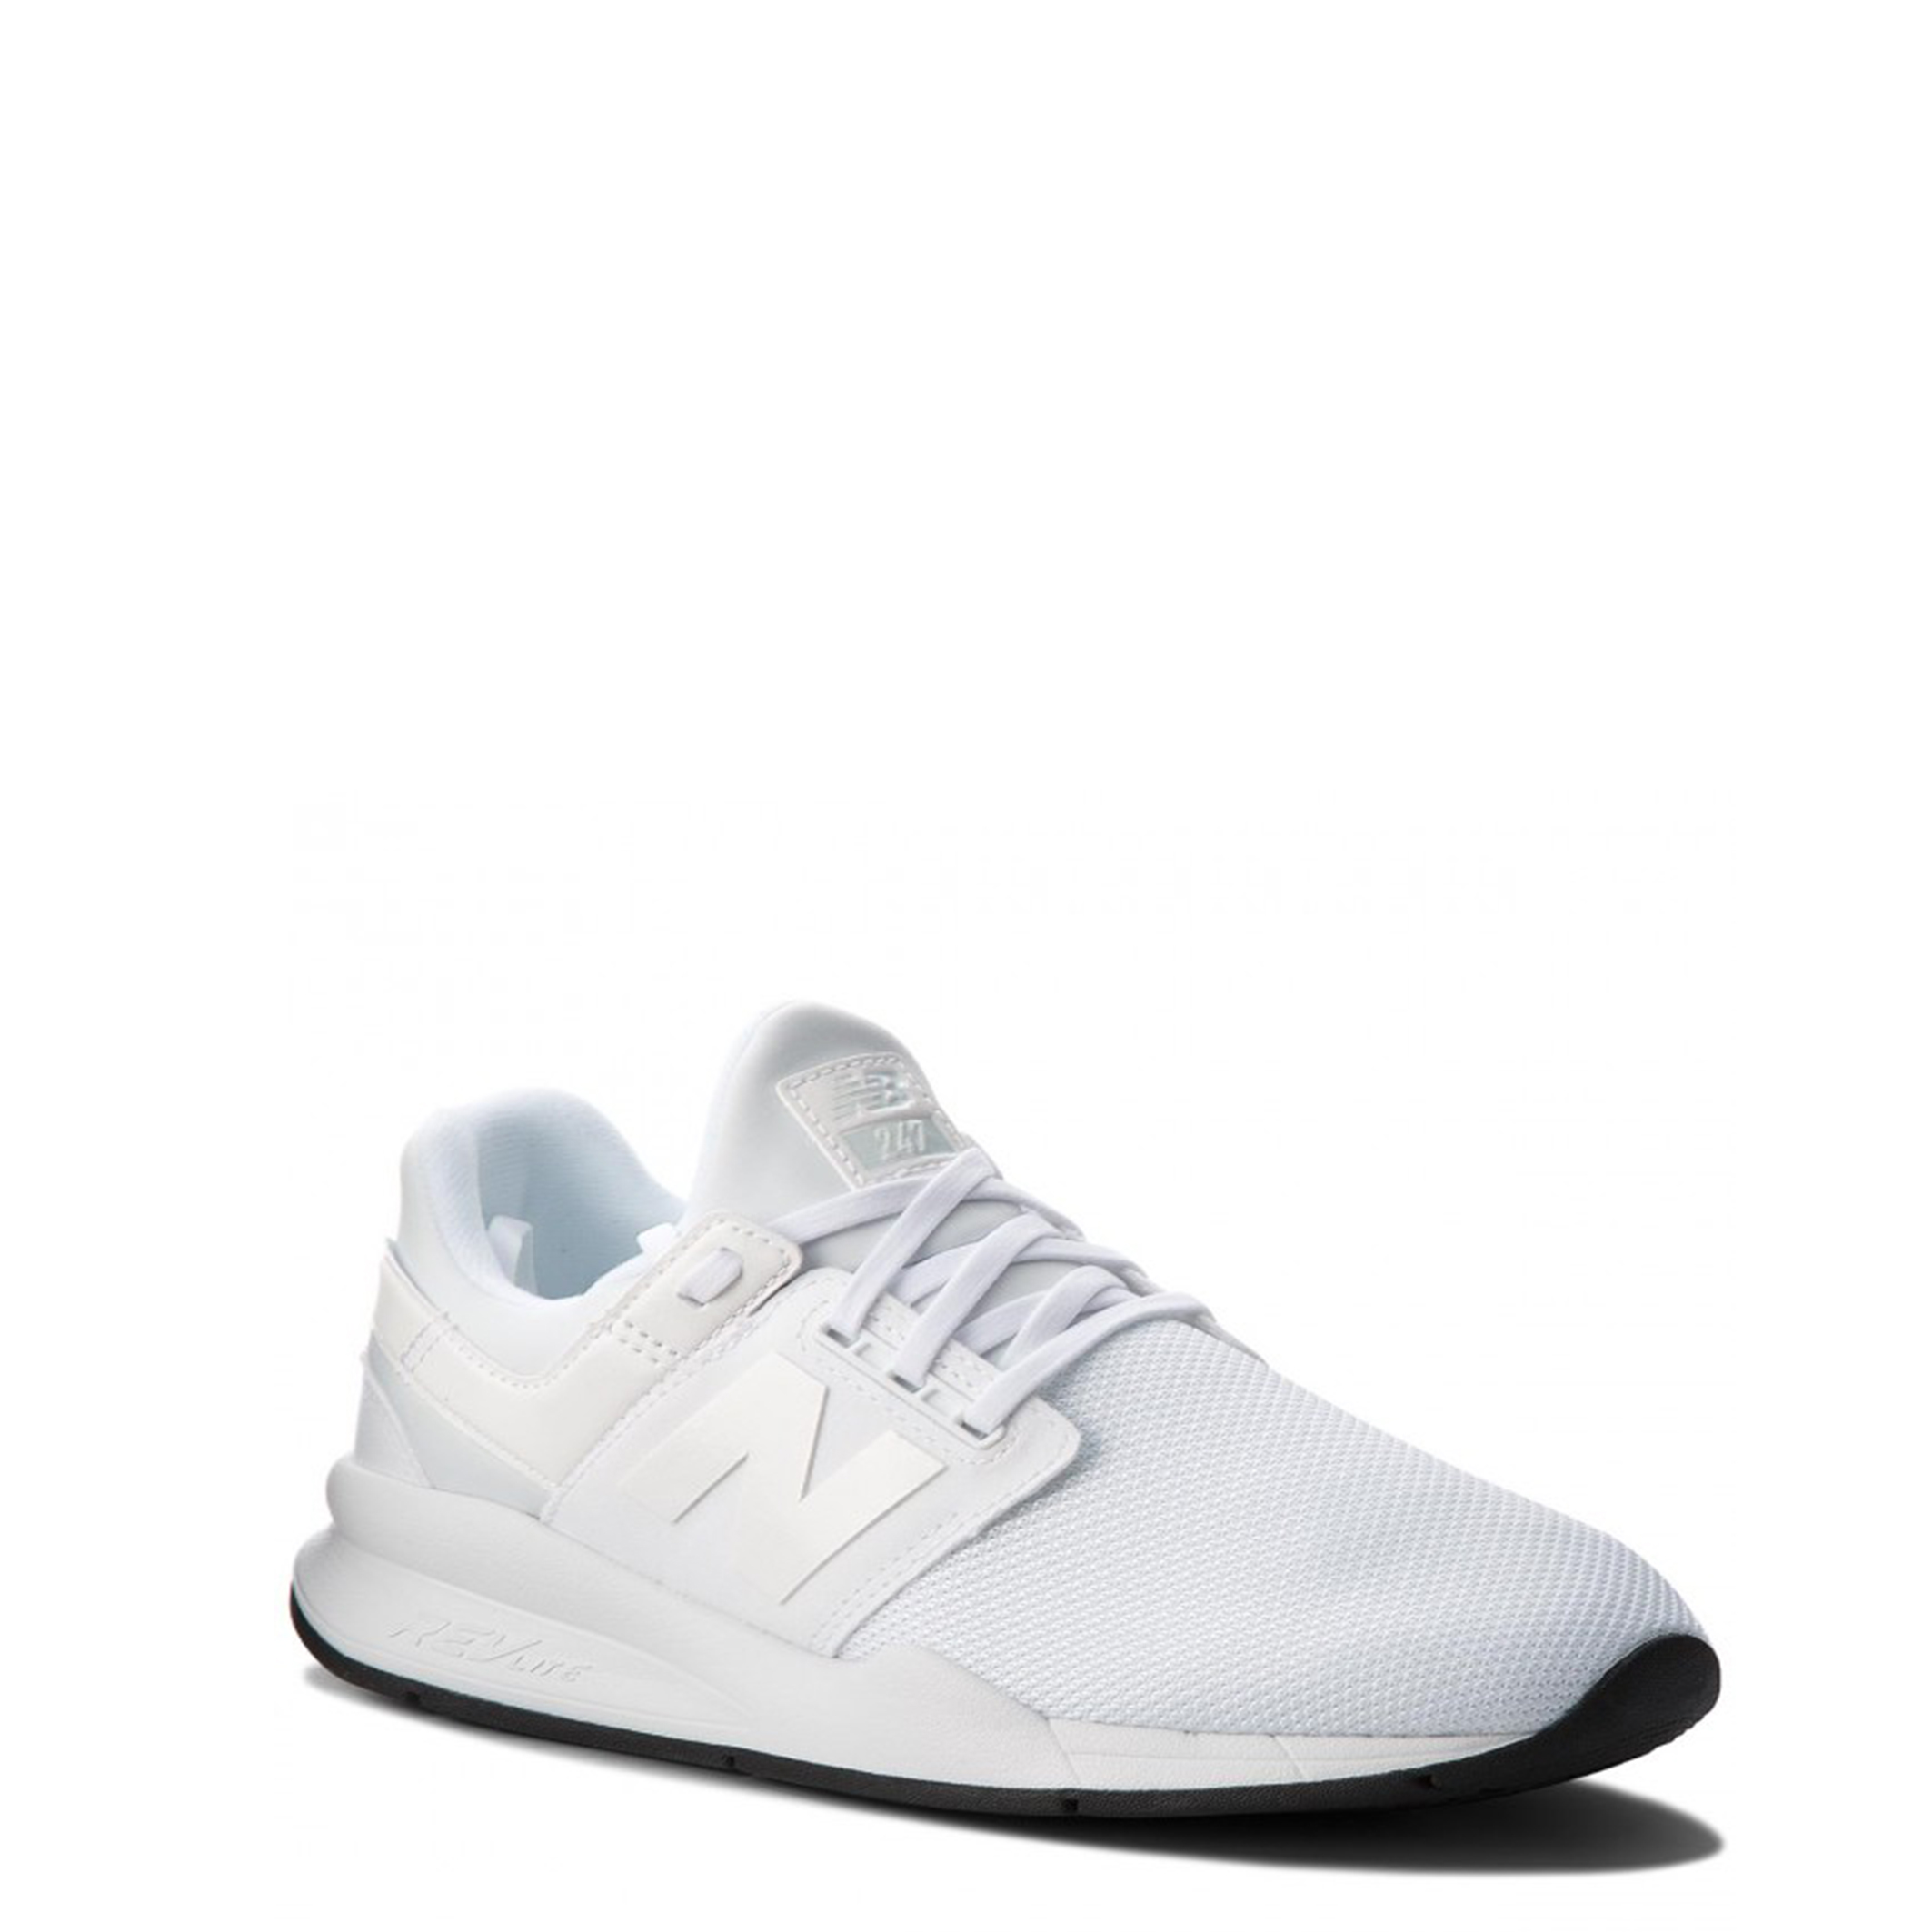 Baskets / Sneakers  New balance WS247 white